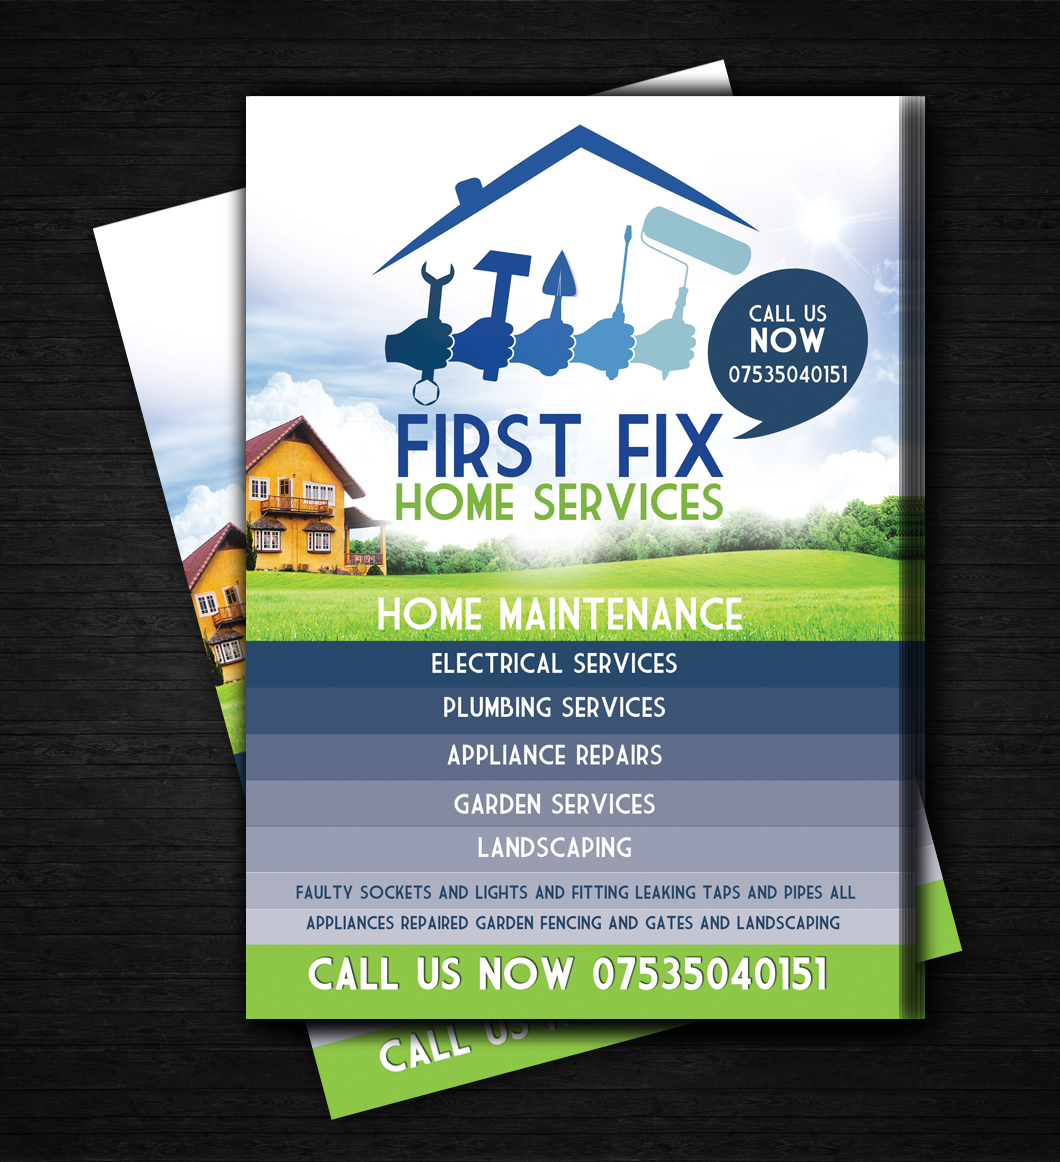 5 Flyer Designs | Appliance Flyer Design Project for a Business in on interior design flyer, logo design flyer, web design flyer, fiesta flyer, architecture flyer, landscaping flyer, photography flyer, graphic design flyer,